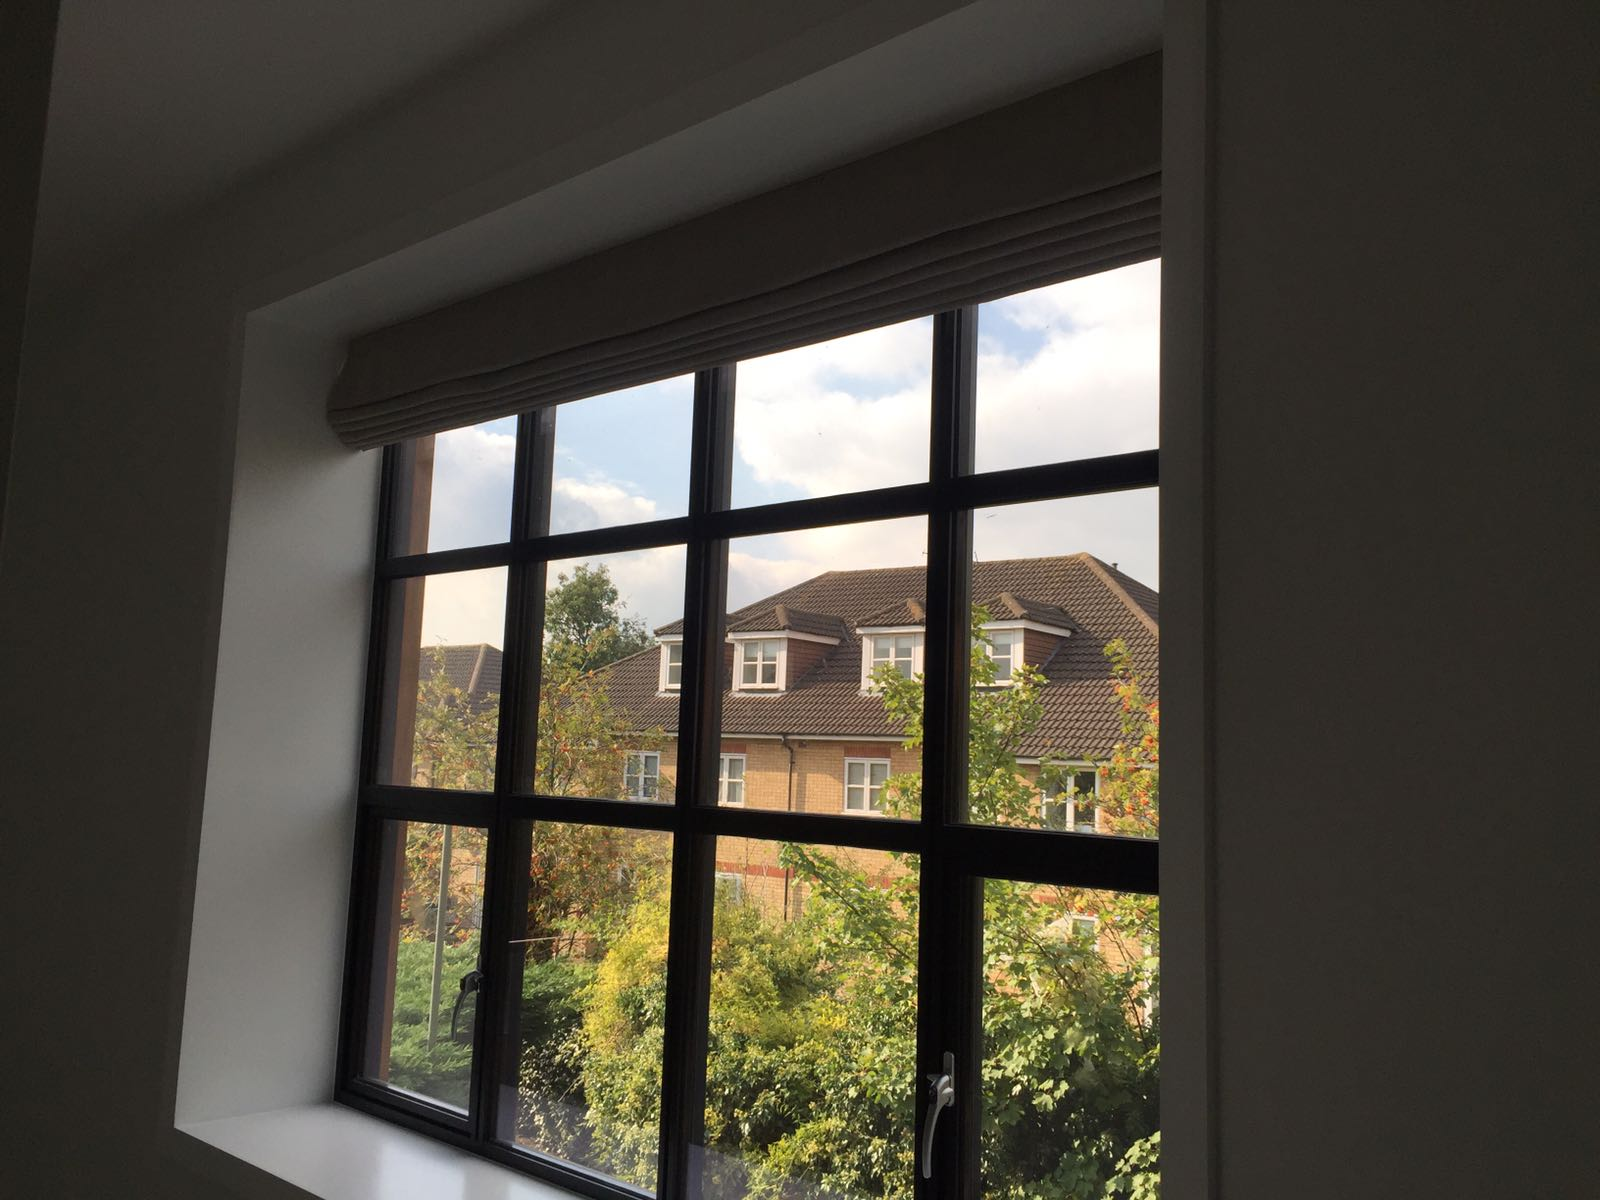 Roman Blind NW7 - Mill Hill